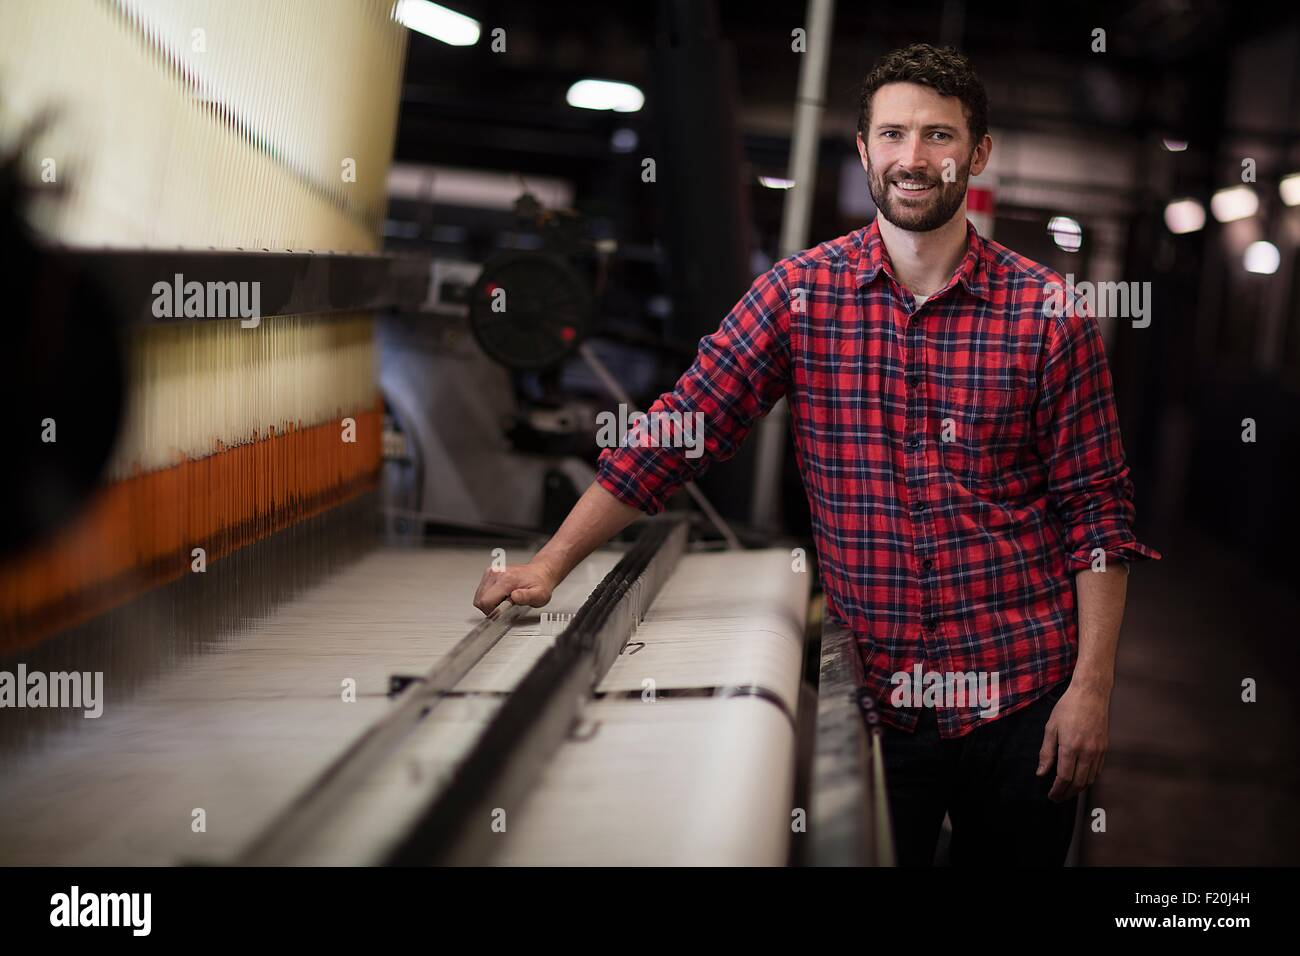 Portrait of young male weaver using old weaving machine in textile mill - Stock Image